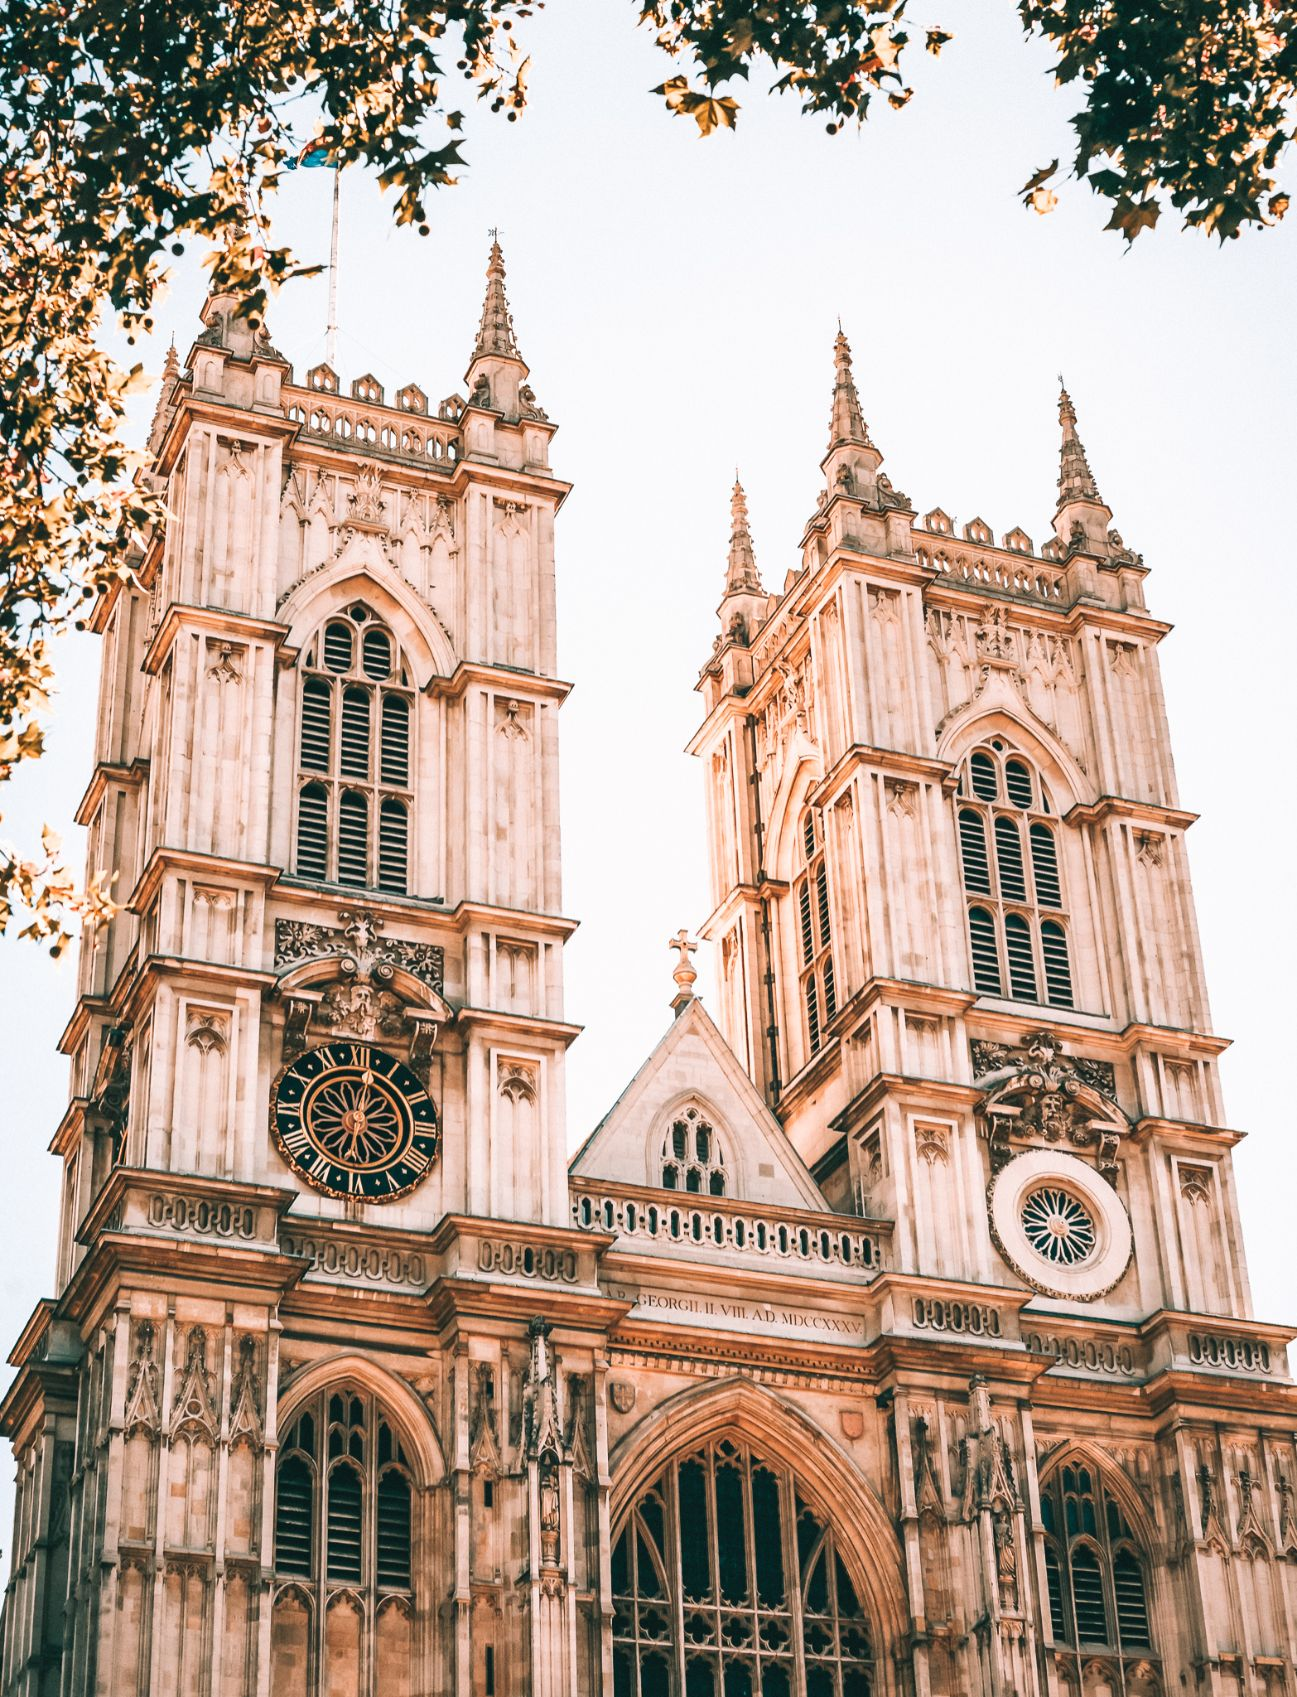 Exterior architecture of Westminster Abbey with leaves hanging from a tree in the edge of the photograph